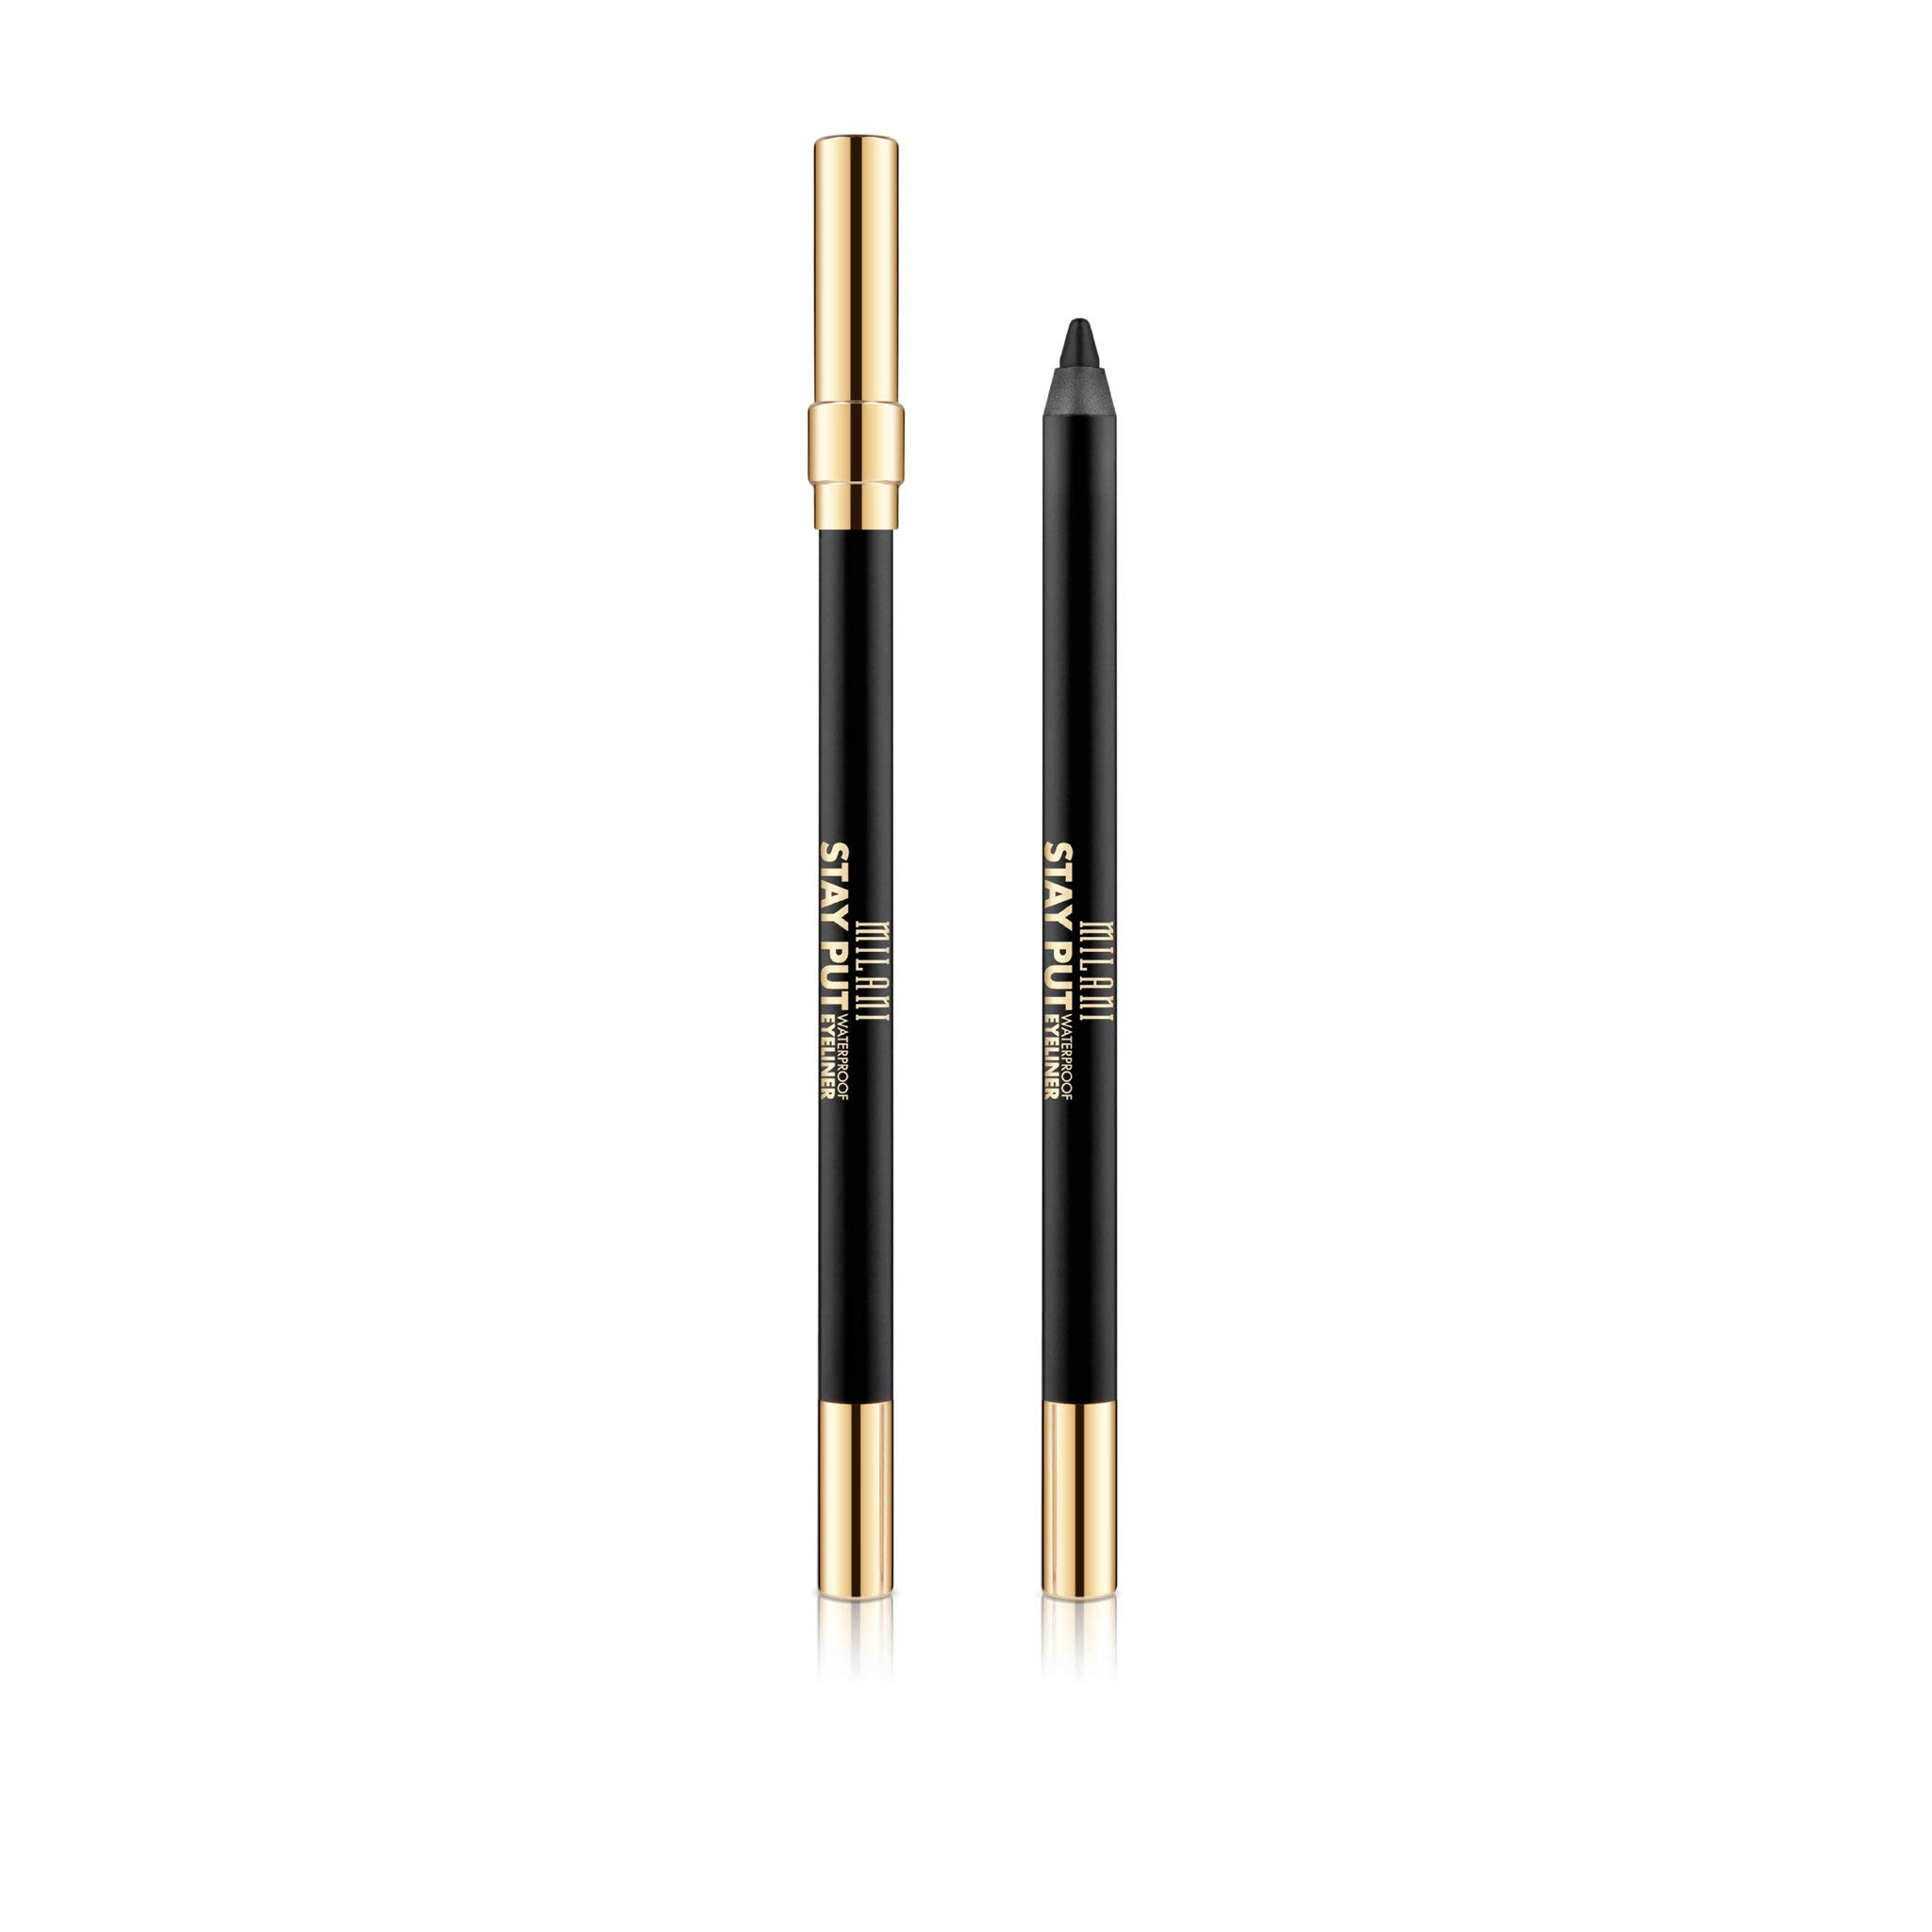 Milani Stay Put Waterproof Eyeliner - Linked On Black (0.04 Ounce) Cruelty-Free Eyeliner - Line & Define Eyes with High Pigment Shades for Long-Lasting Wear